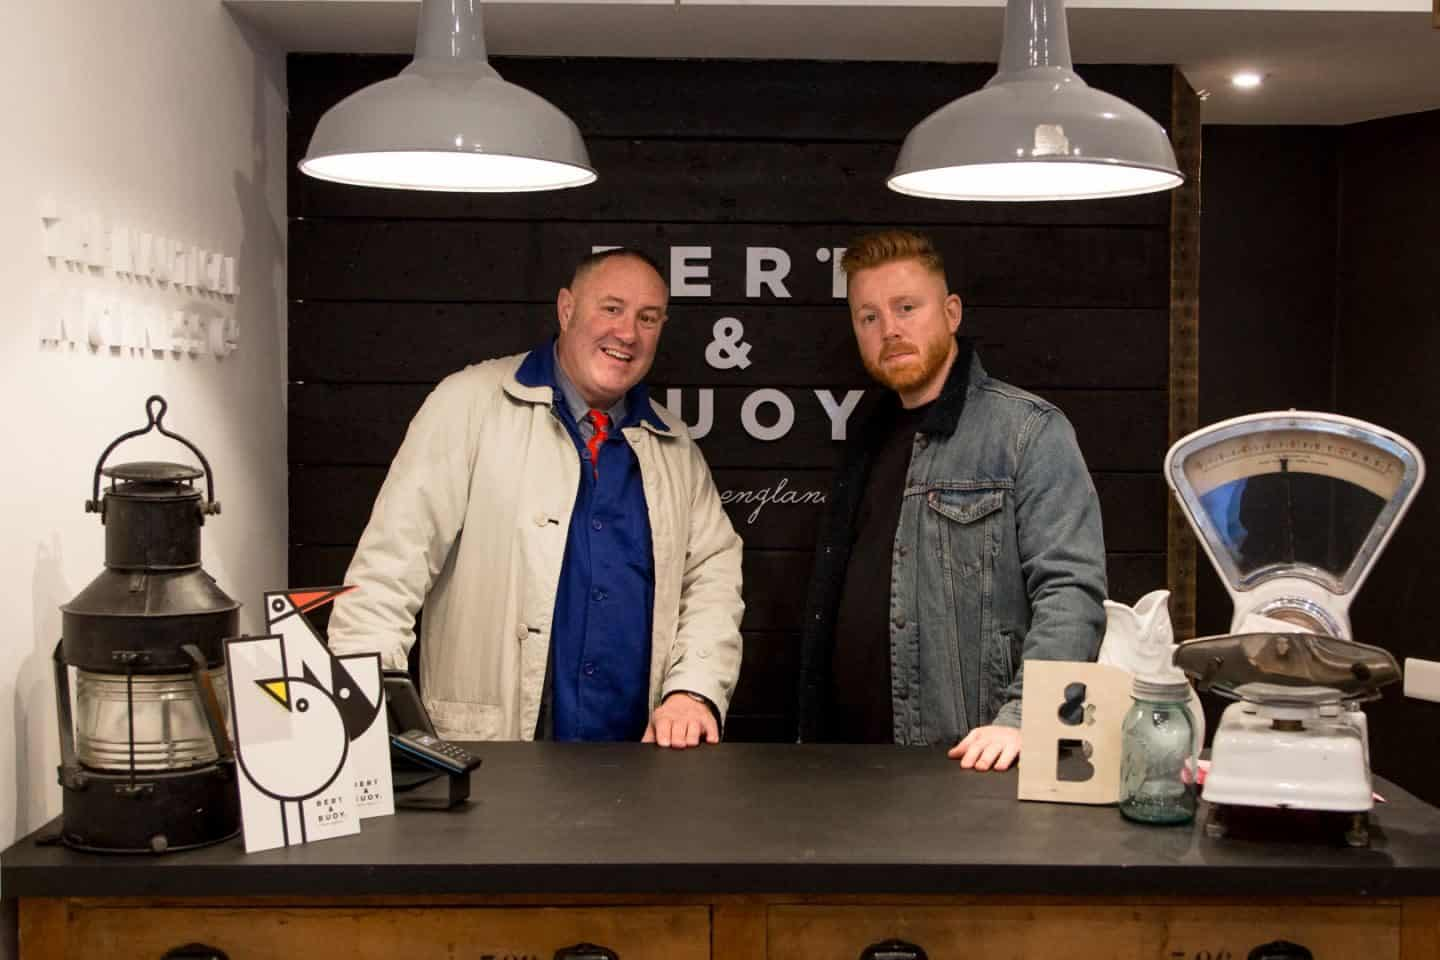 BERT & BUOY DARTMOUTH SHOP OPENING - Bert & Keith Brymer Jones behind the counter